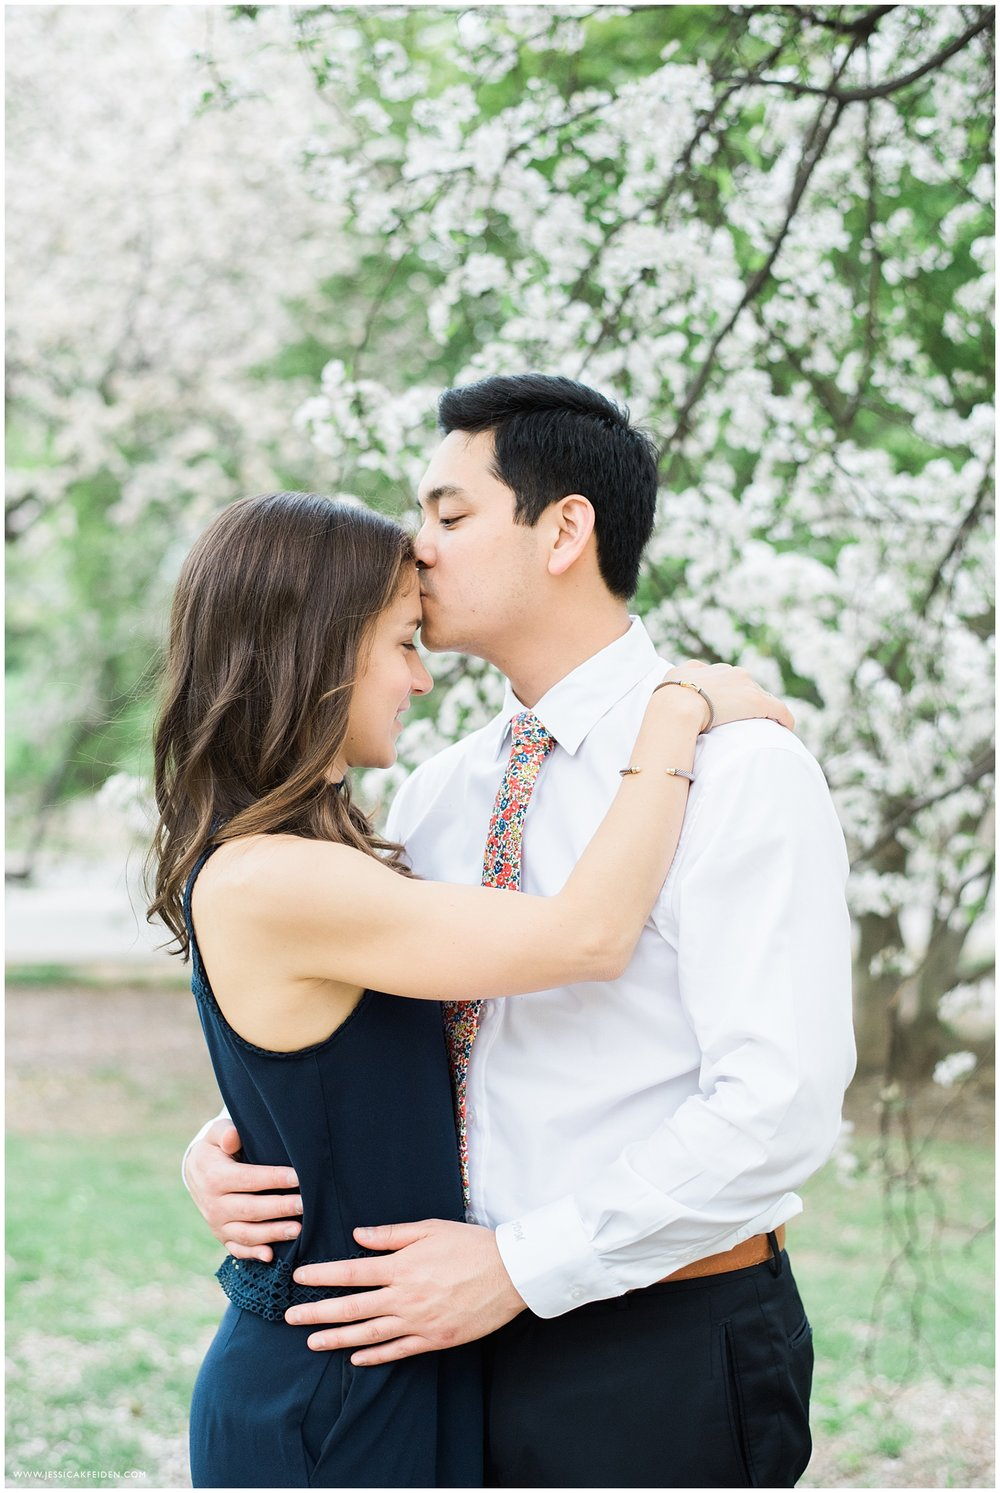 Jessica K Feiden Photography_Central Park NYC Engagement Session_0009.jpg